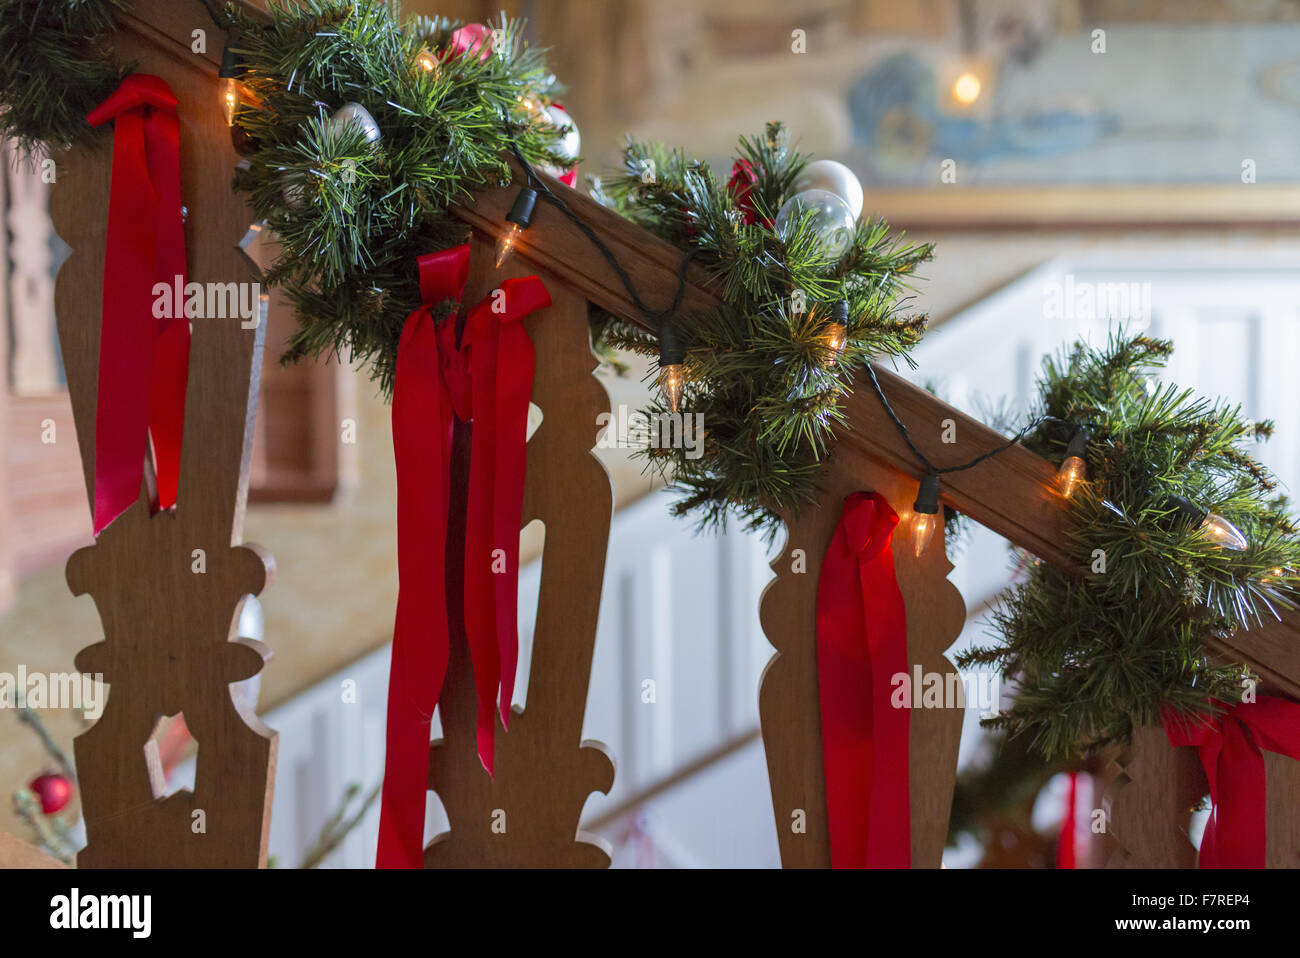 Standen Photos & Standen Images - Page 6 - Alamy